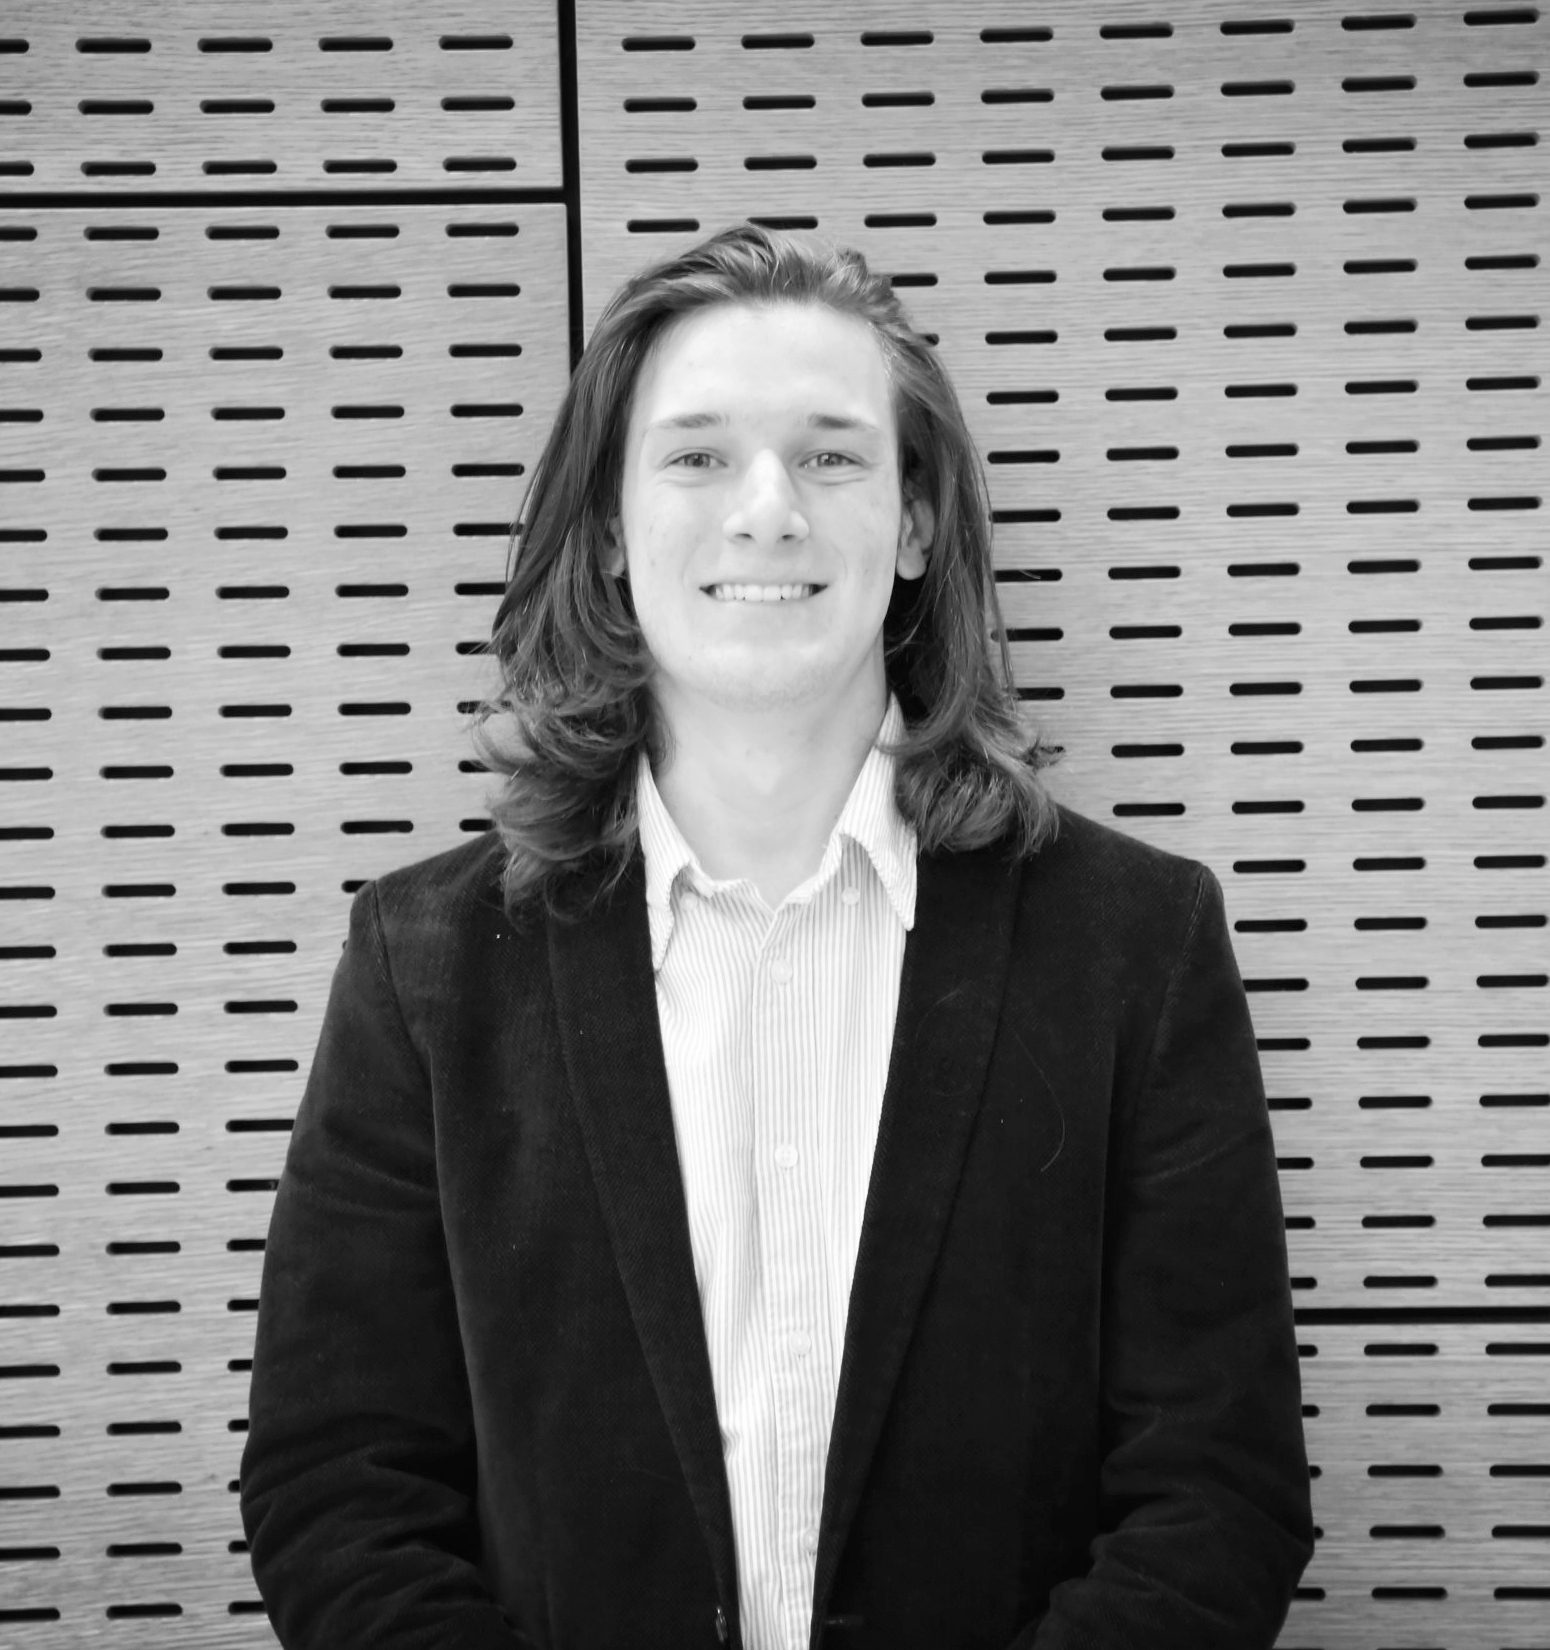 Nate Bridgman is the Communications Lead for Houseplant Games. Coming from Austin, Texas, he founded HPG because in it he saw an opportunity to develop his professional resume with fellow Baylor students and friends from high school. -